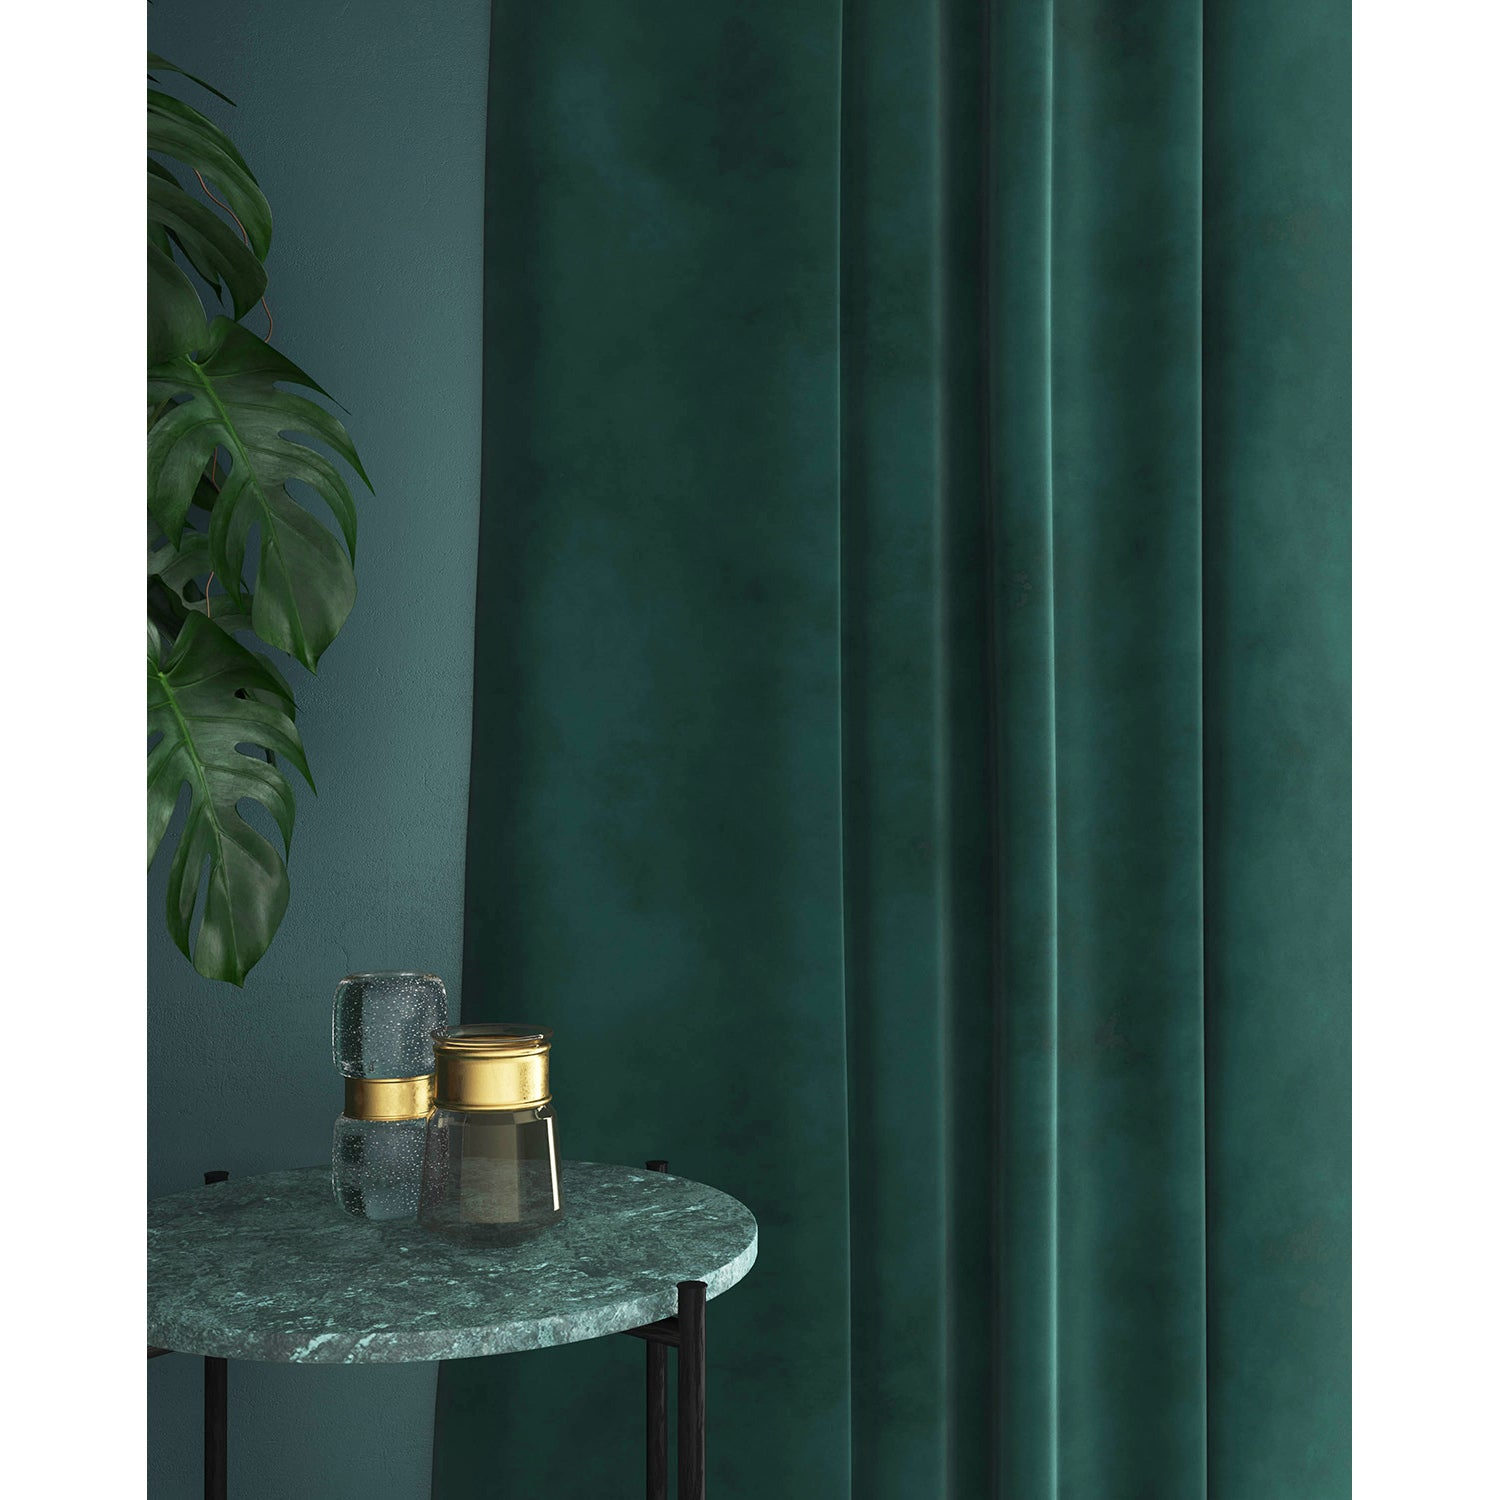 Curtain in a ocean blue velvet fabric with a stain resistant finish